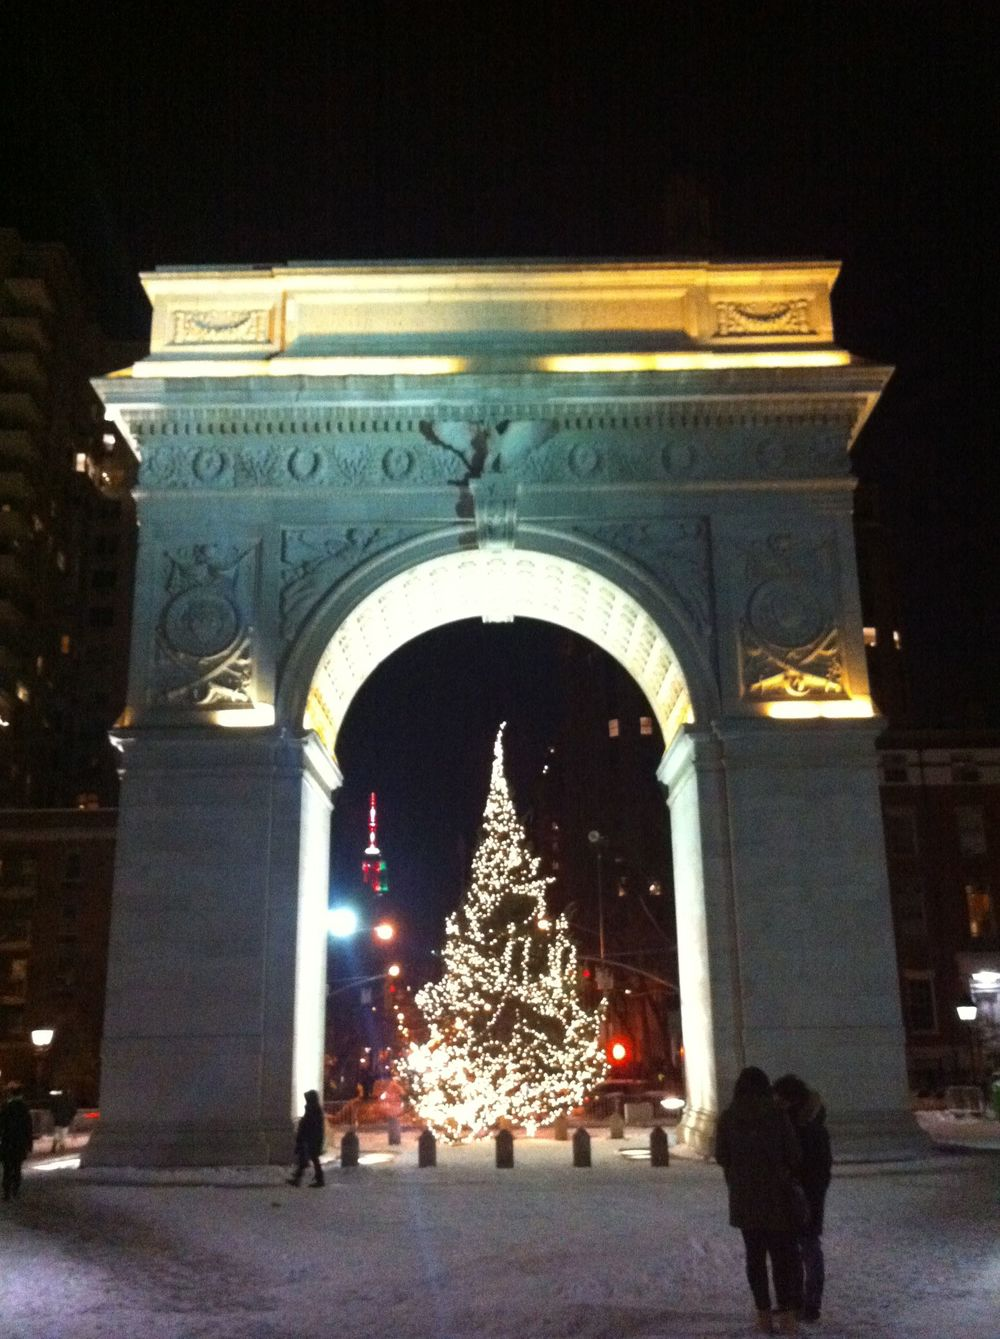 Washington Square Park on a wintery night